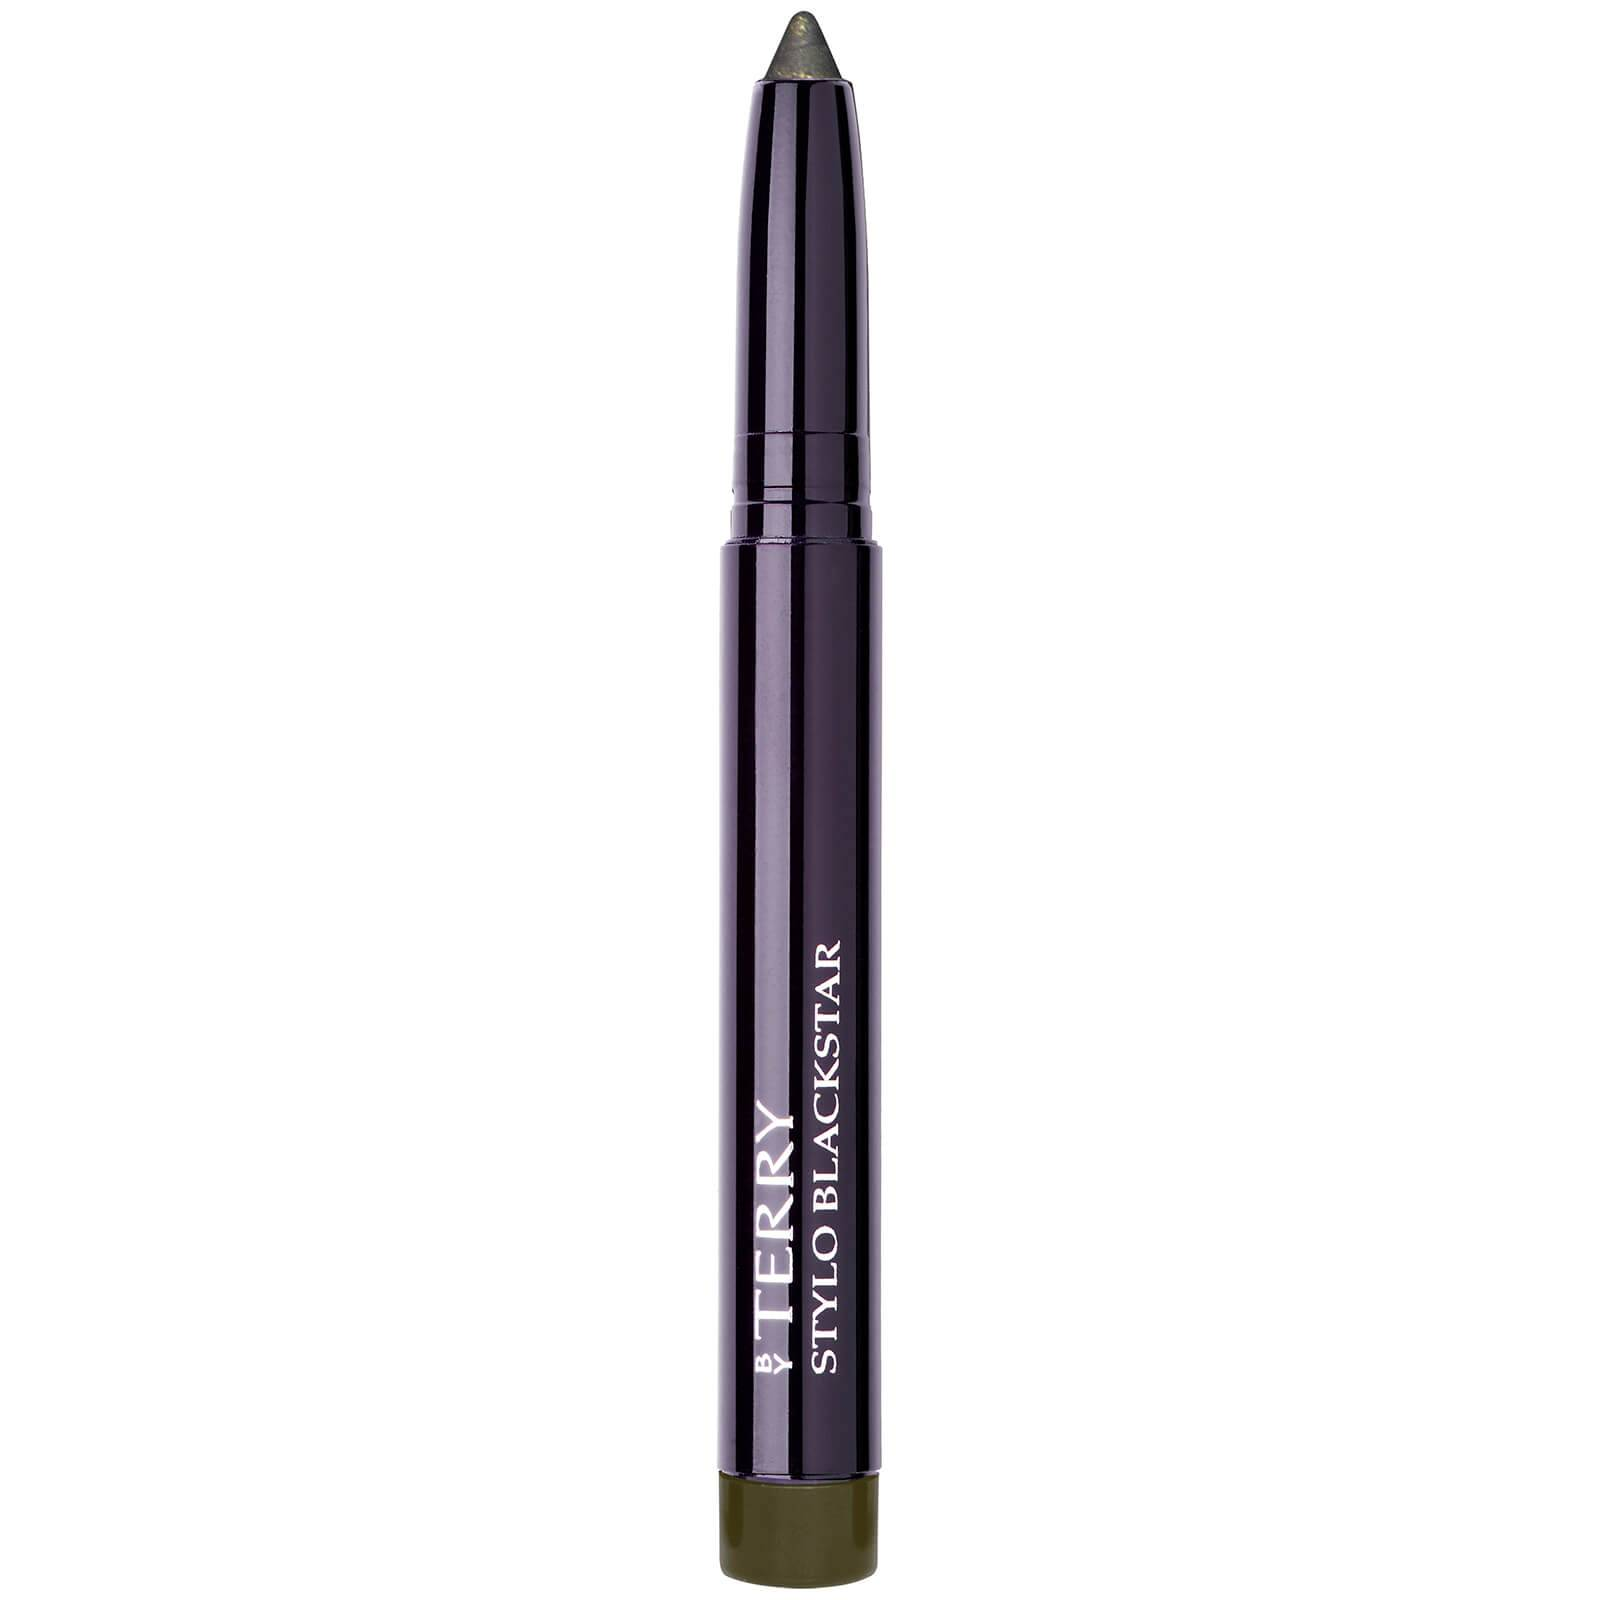 By Terry Stylo Blackstar Eye Liner 1.4g (Various Shades) - No.7 Bronze Green